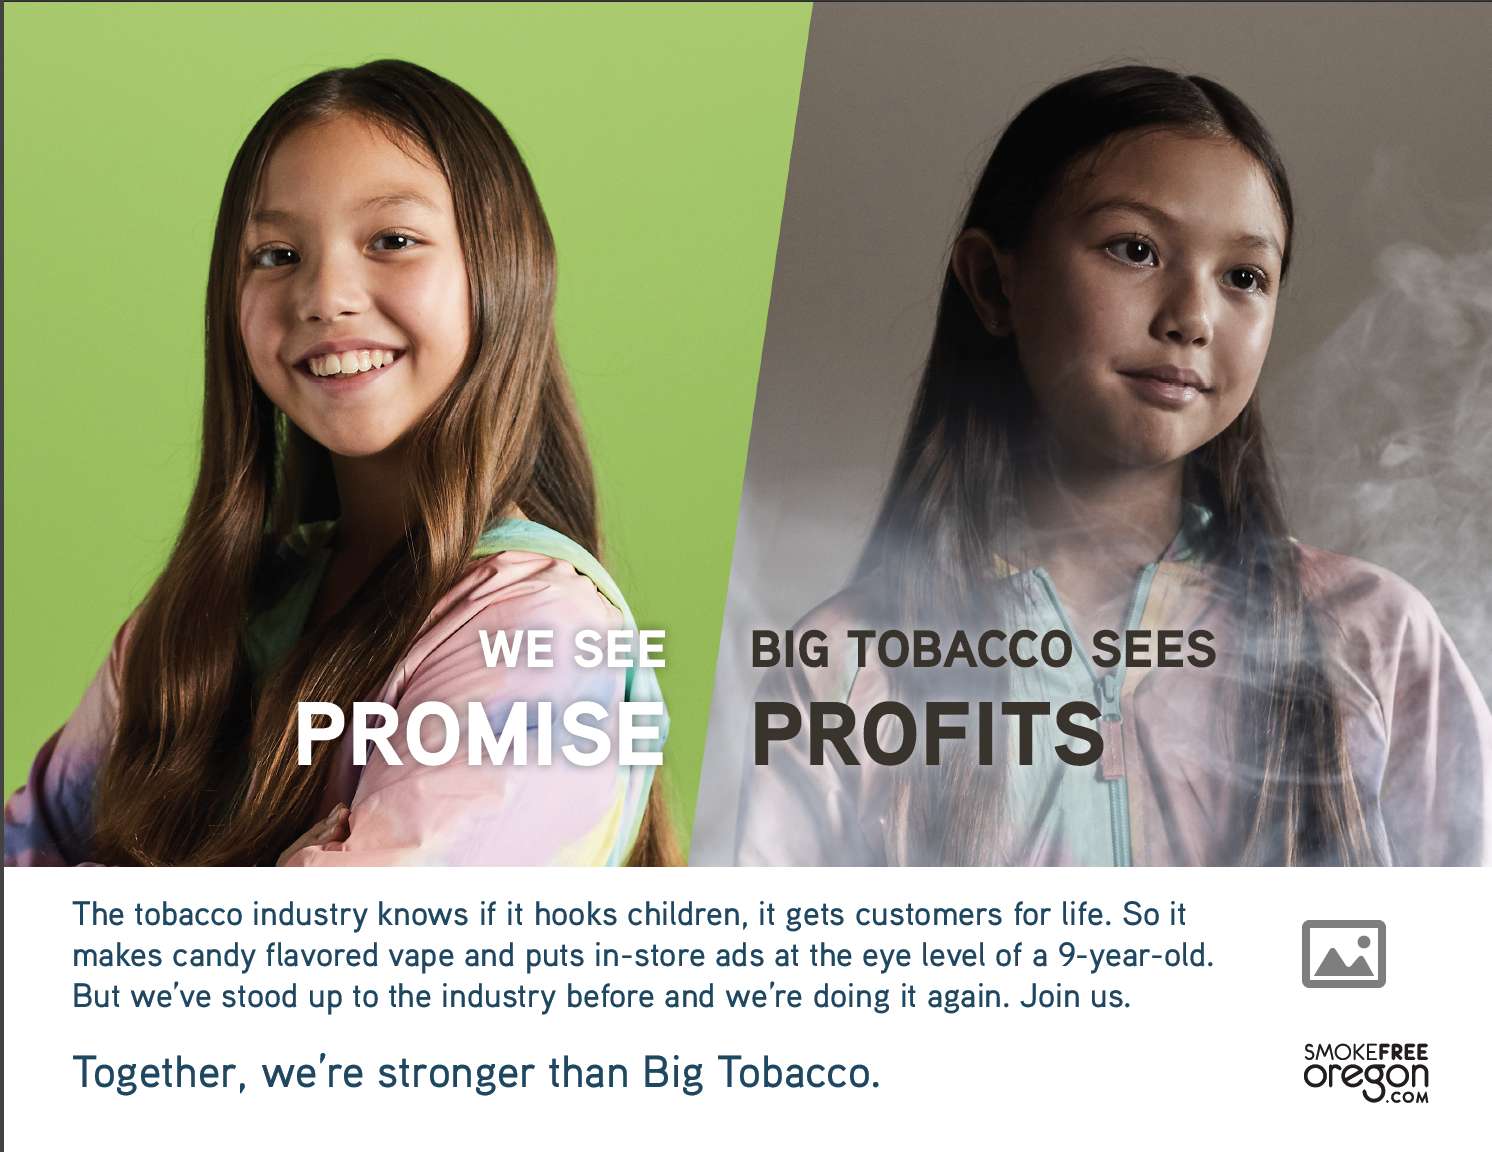 Child with bright green background: We see promise. 